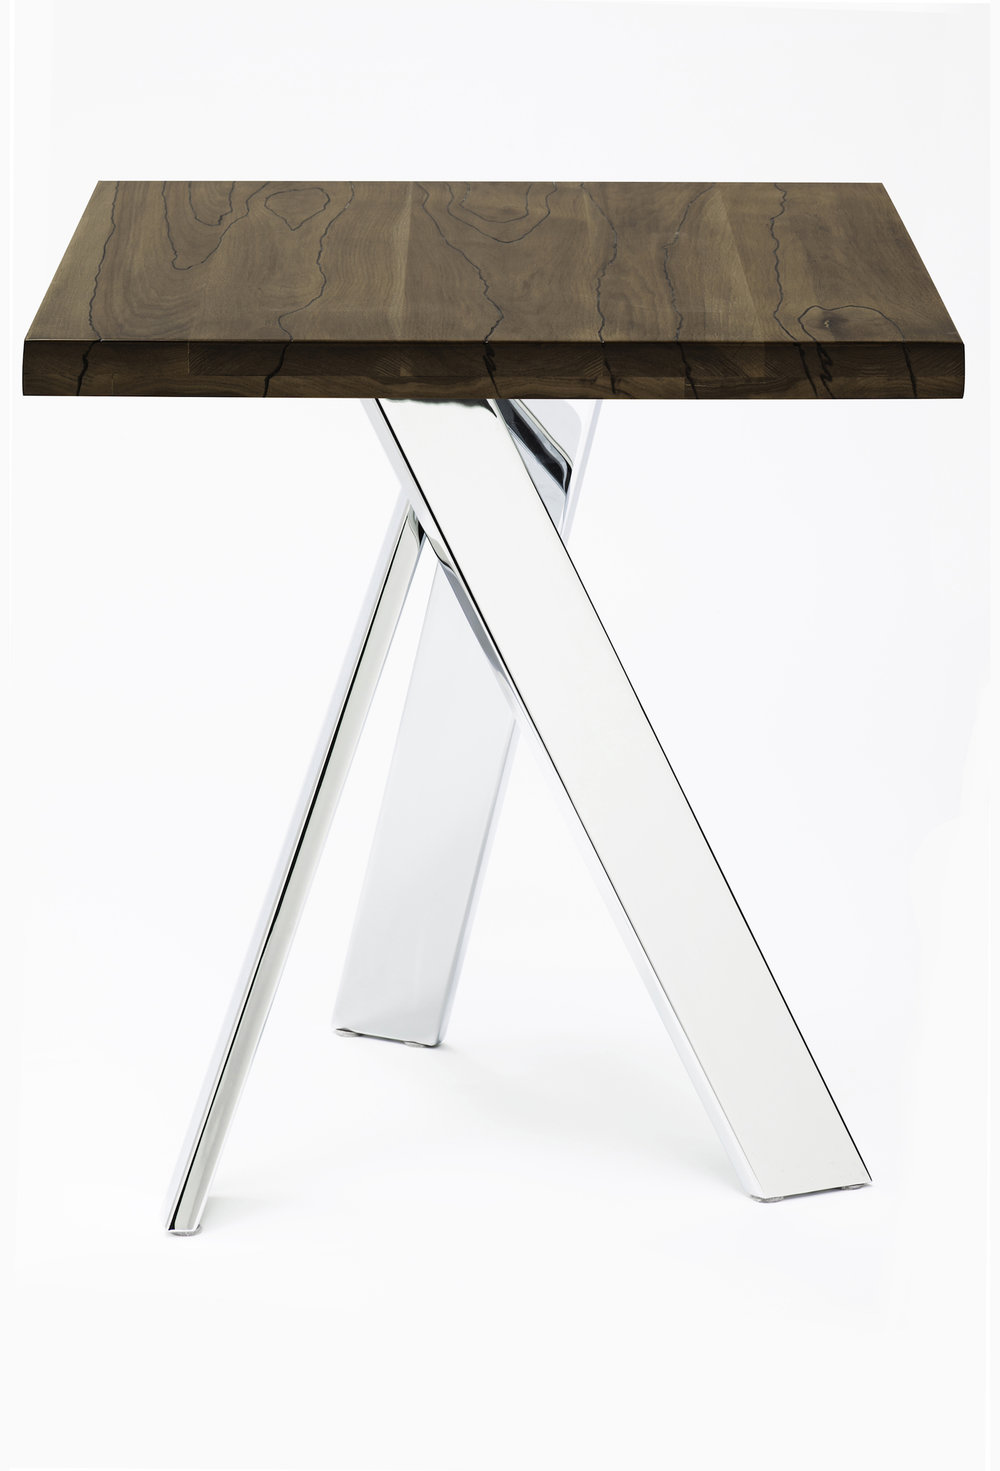 "24"" x 24"" x 30"" Dining/Restaurant Table<br>Solid Hickory with Chrome Plated Base"